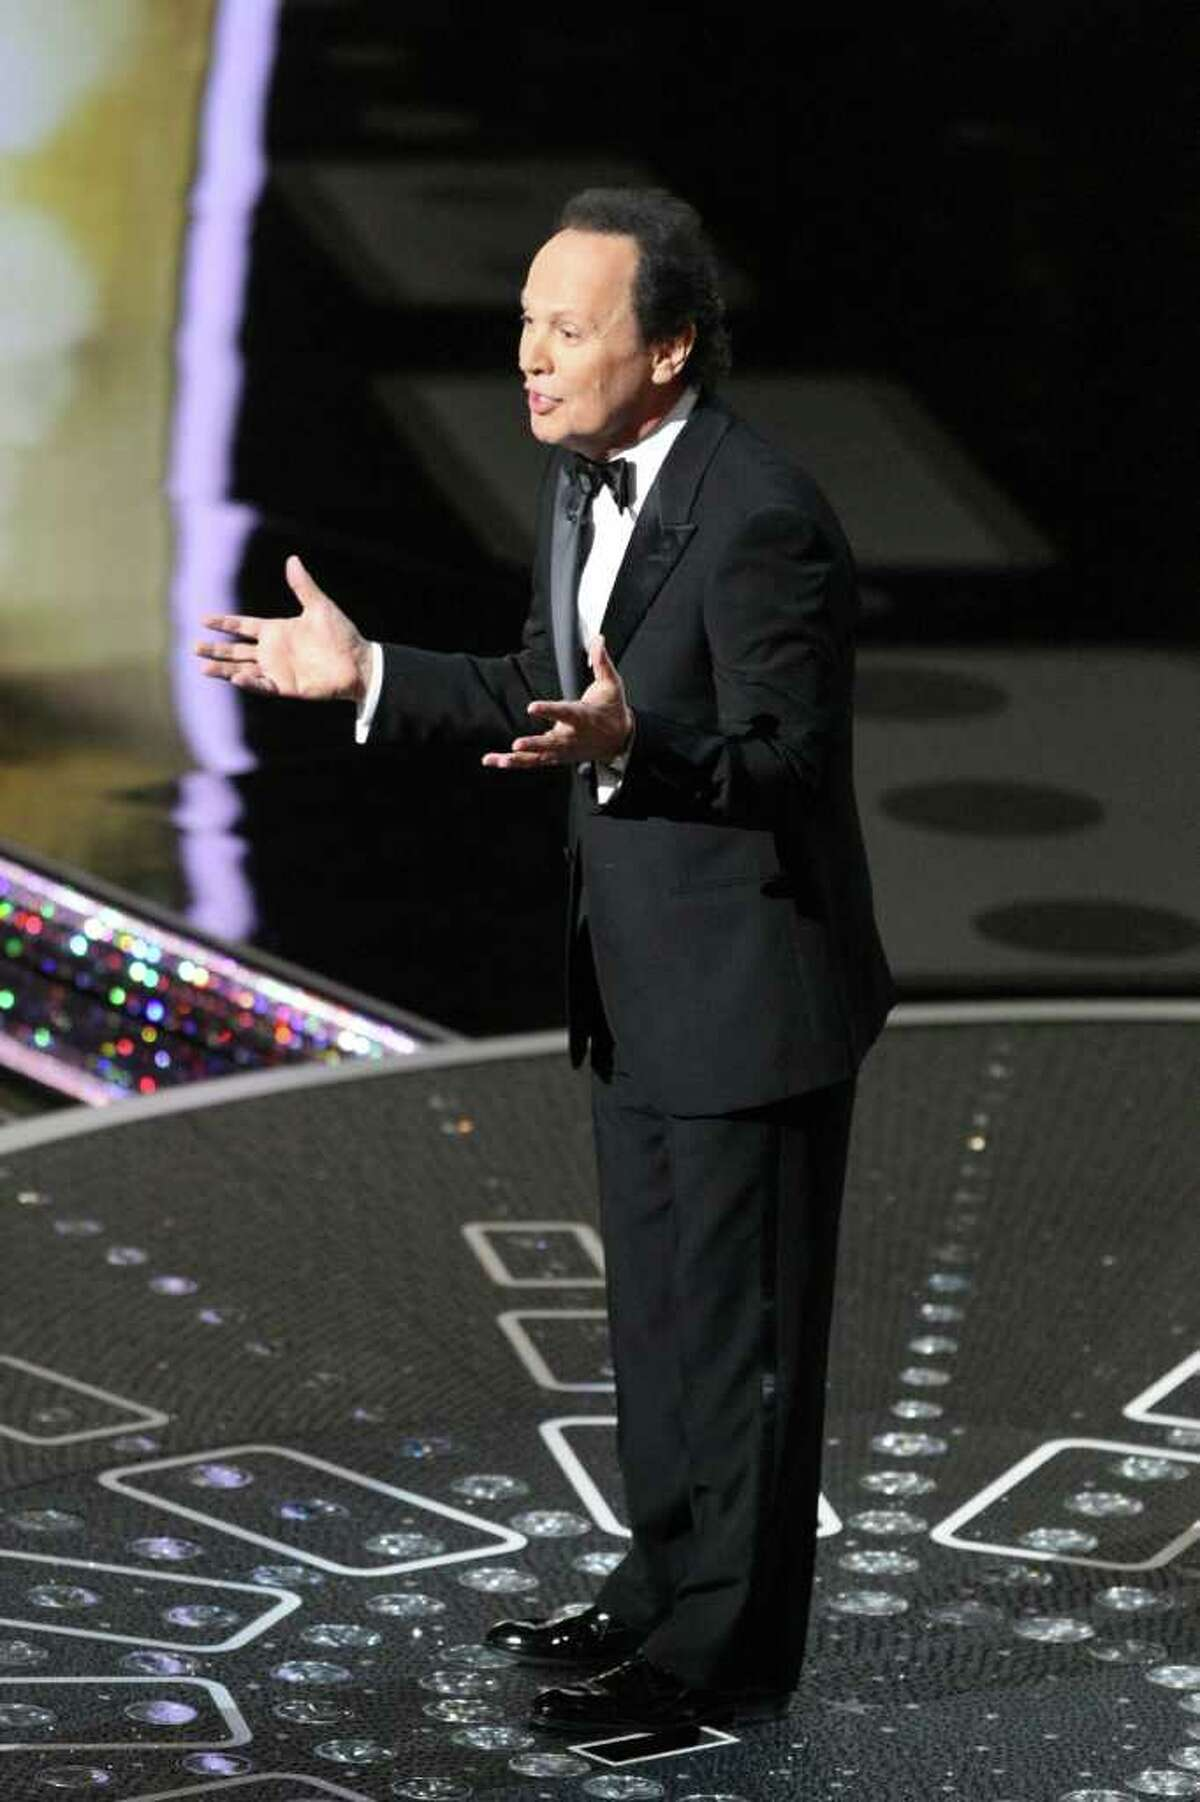 FILE -- Billy Crystal during the 83rd Academy Awards at the Kodak Theater in Los Angeles, Feb. 27, 2011. Crystal will return to host the 84th Academy Awards, an event whose criticism only adds to the hype. (Monica Almeida/The New York Times) -- PHOTO MOVED IN ADVANCE AND NOT FOR USE - ONLINE OR IN PRINT - BEFORE FEB. 19, 2012.